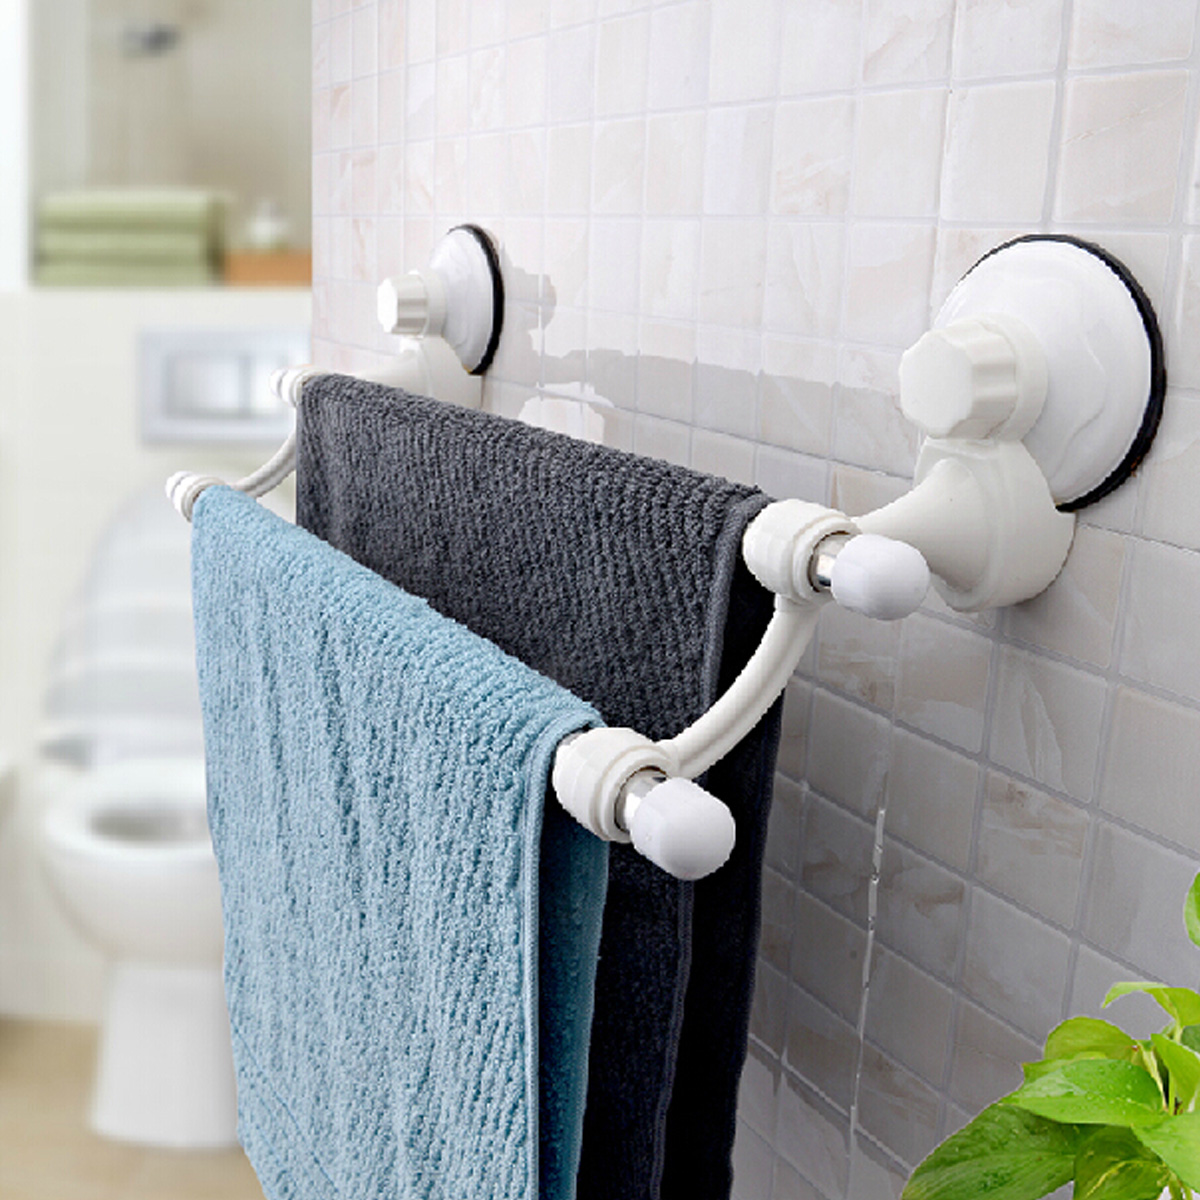 Suction Cup Wall Mounted Bathroom Double Towel Rail Holder Storage Racks Bars SPECIAL TODAY !